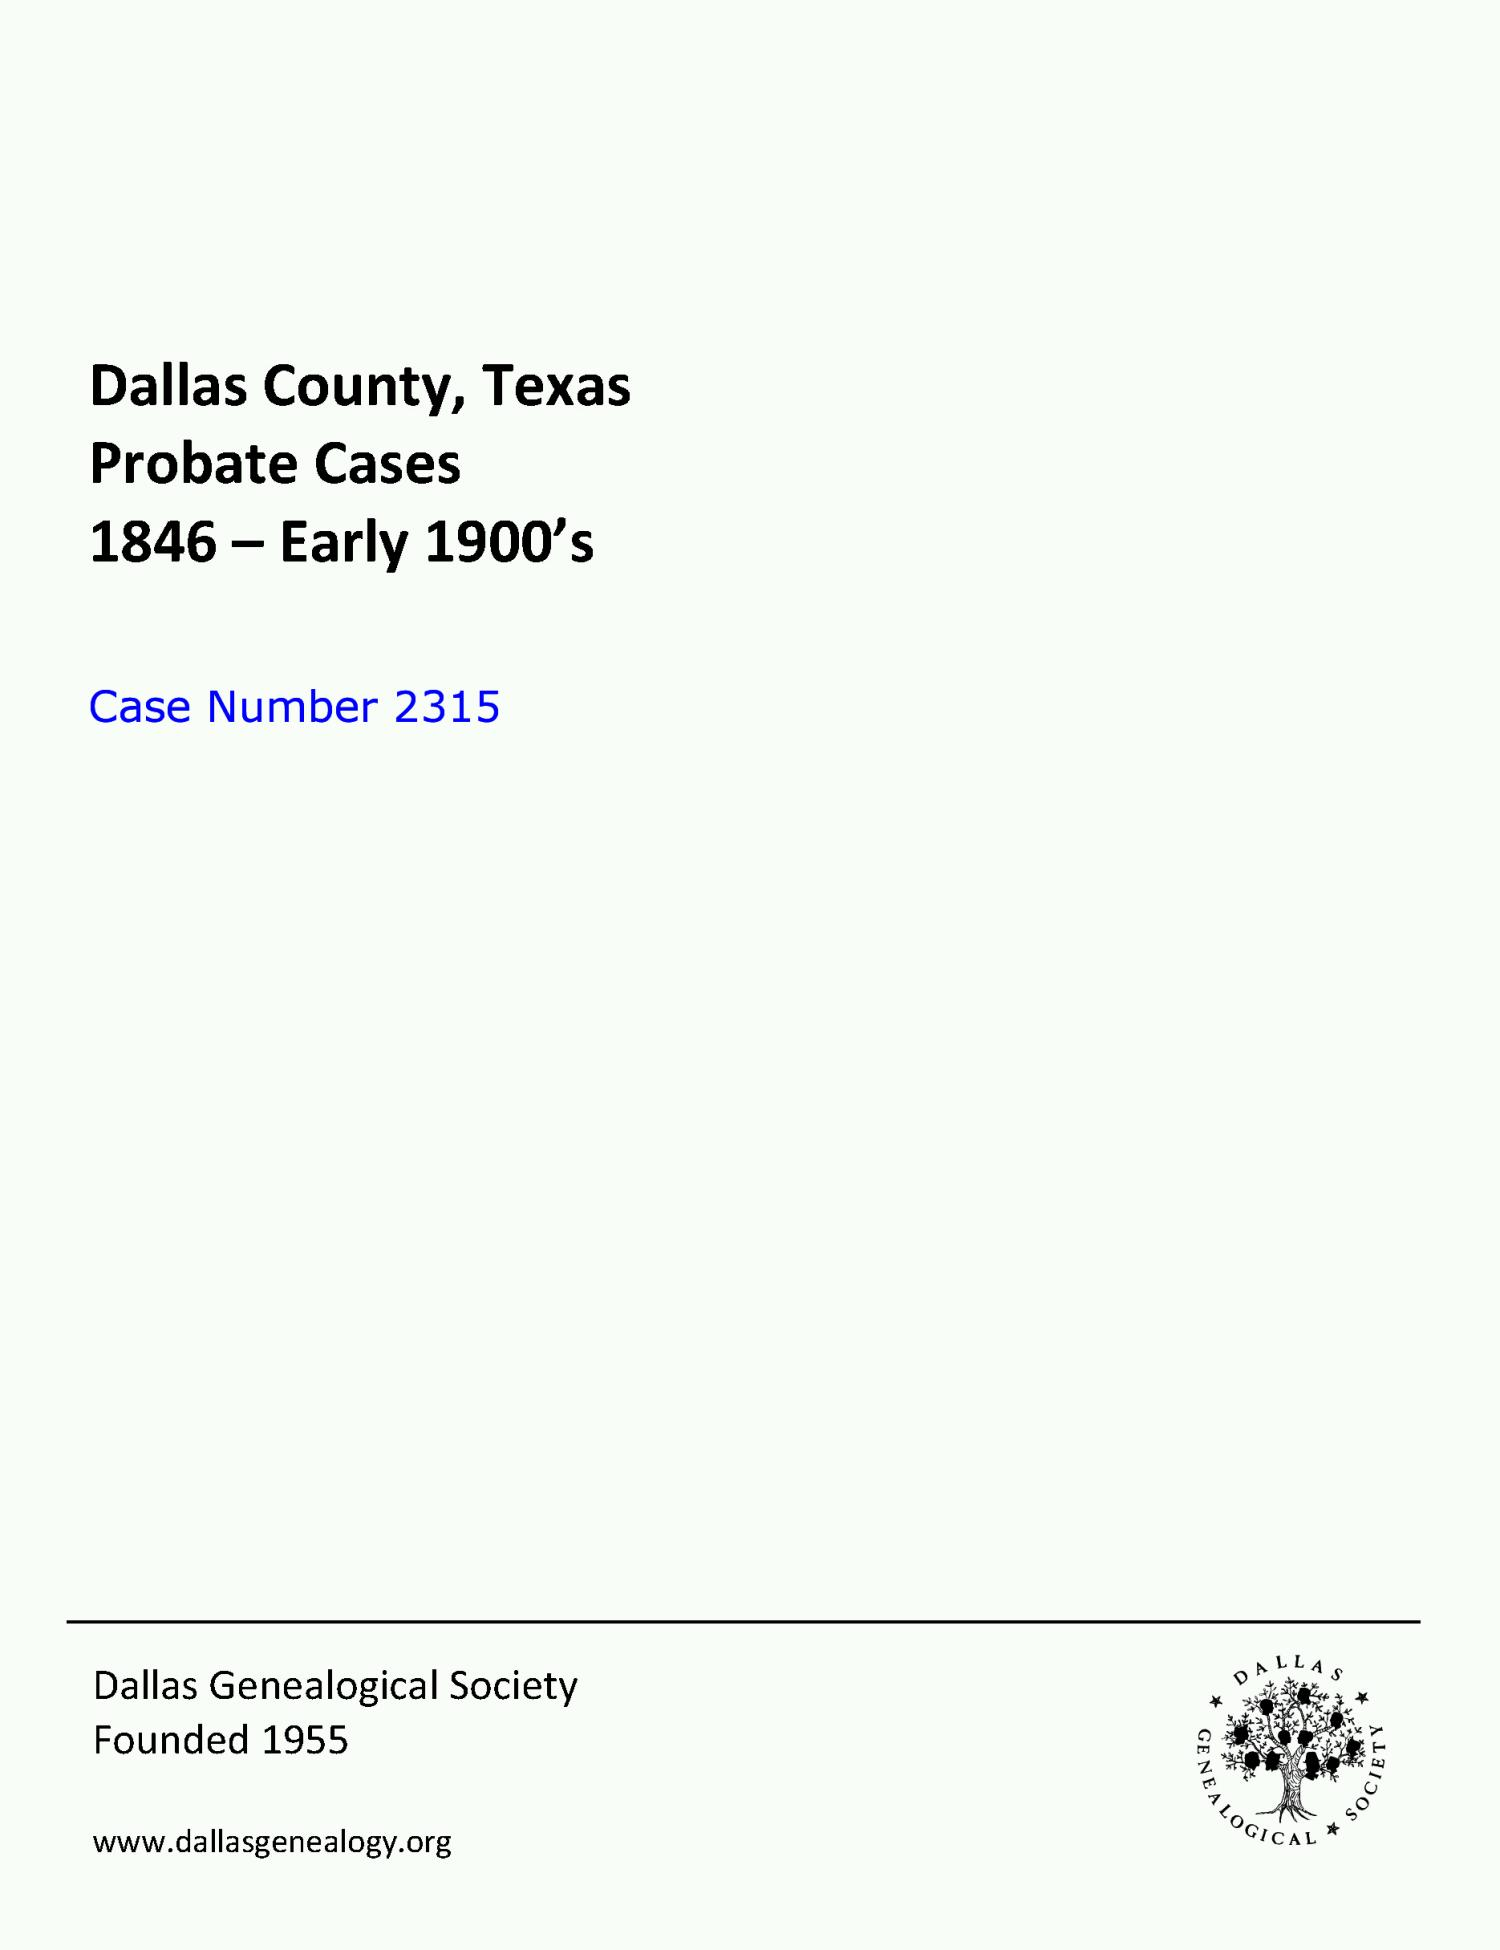 Dallas County Probate Case 2315: Johnson, C.M. & Ella (Deceased)                                                                                                      [Sequence #]: 1 of 16